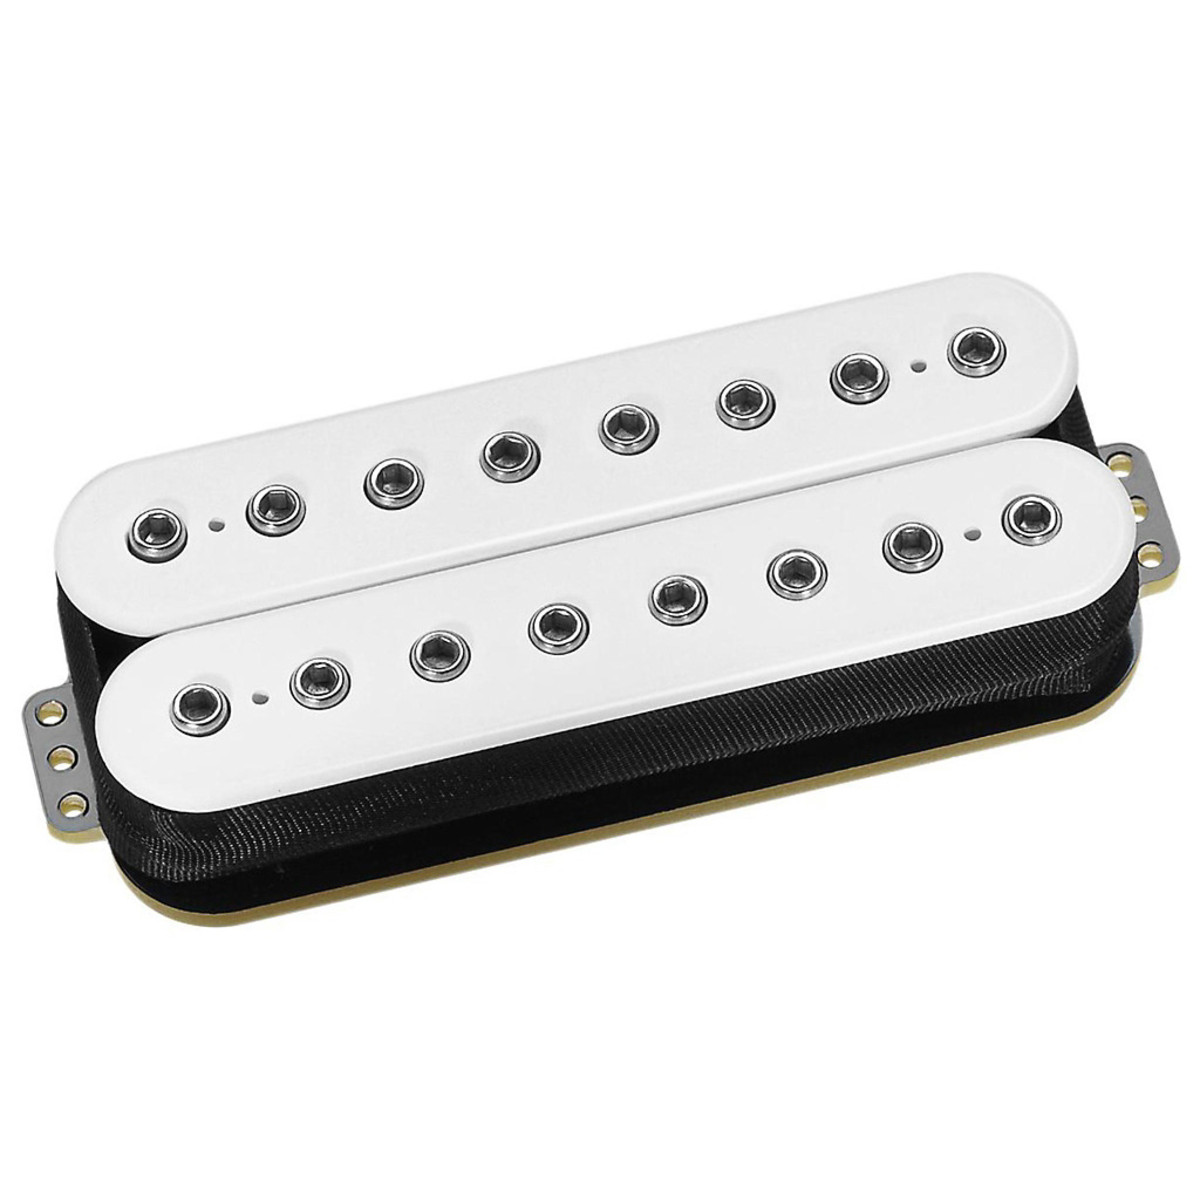 dimarzio dp820 d activator 8 string humbucker guitar pickup white at gear4music. Black Bedroom Furniture Sets. Home Design Ideas